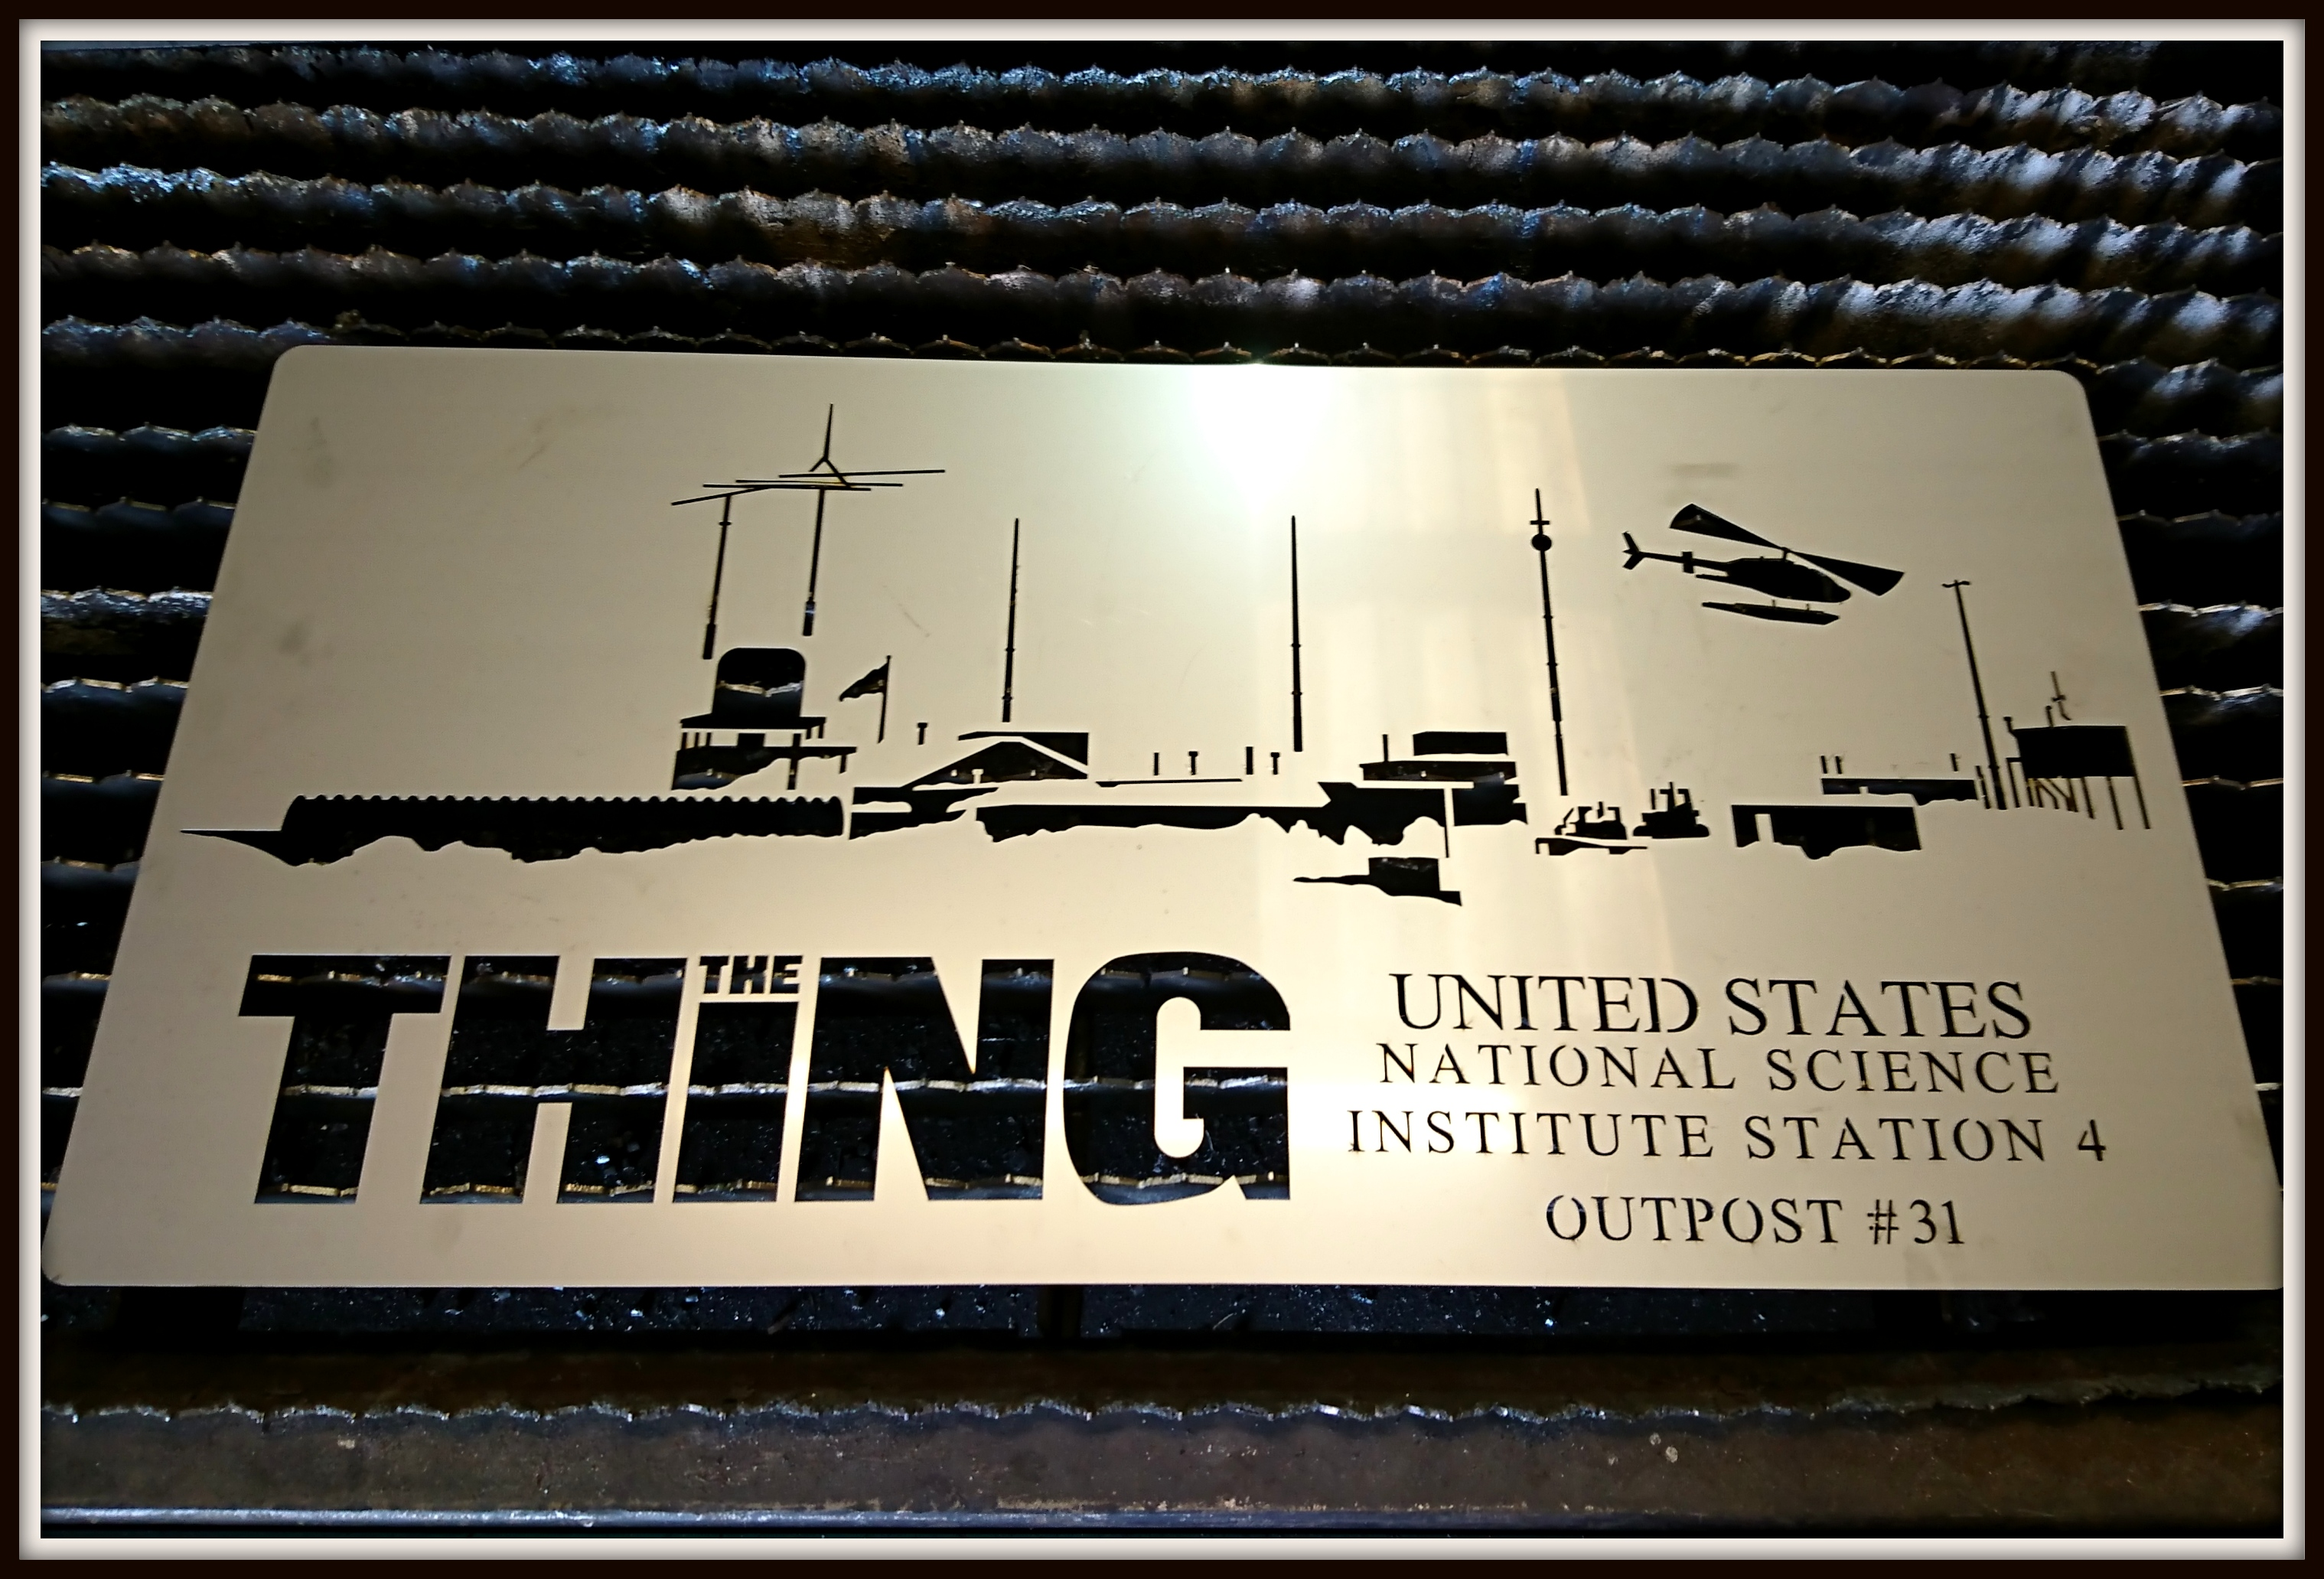 OUTPOST #31